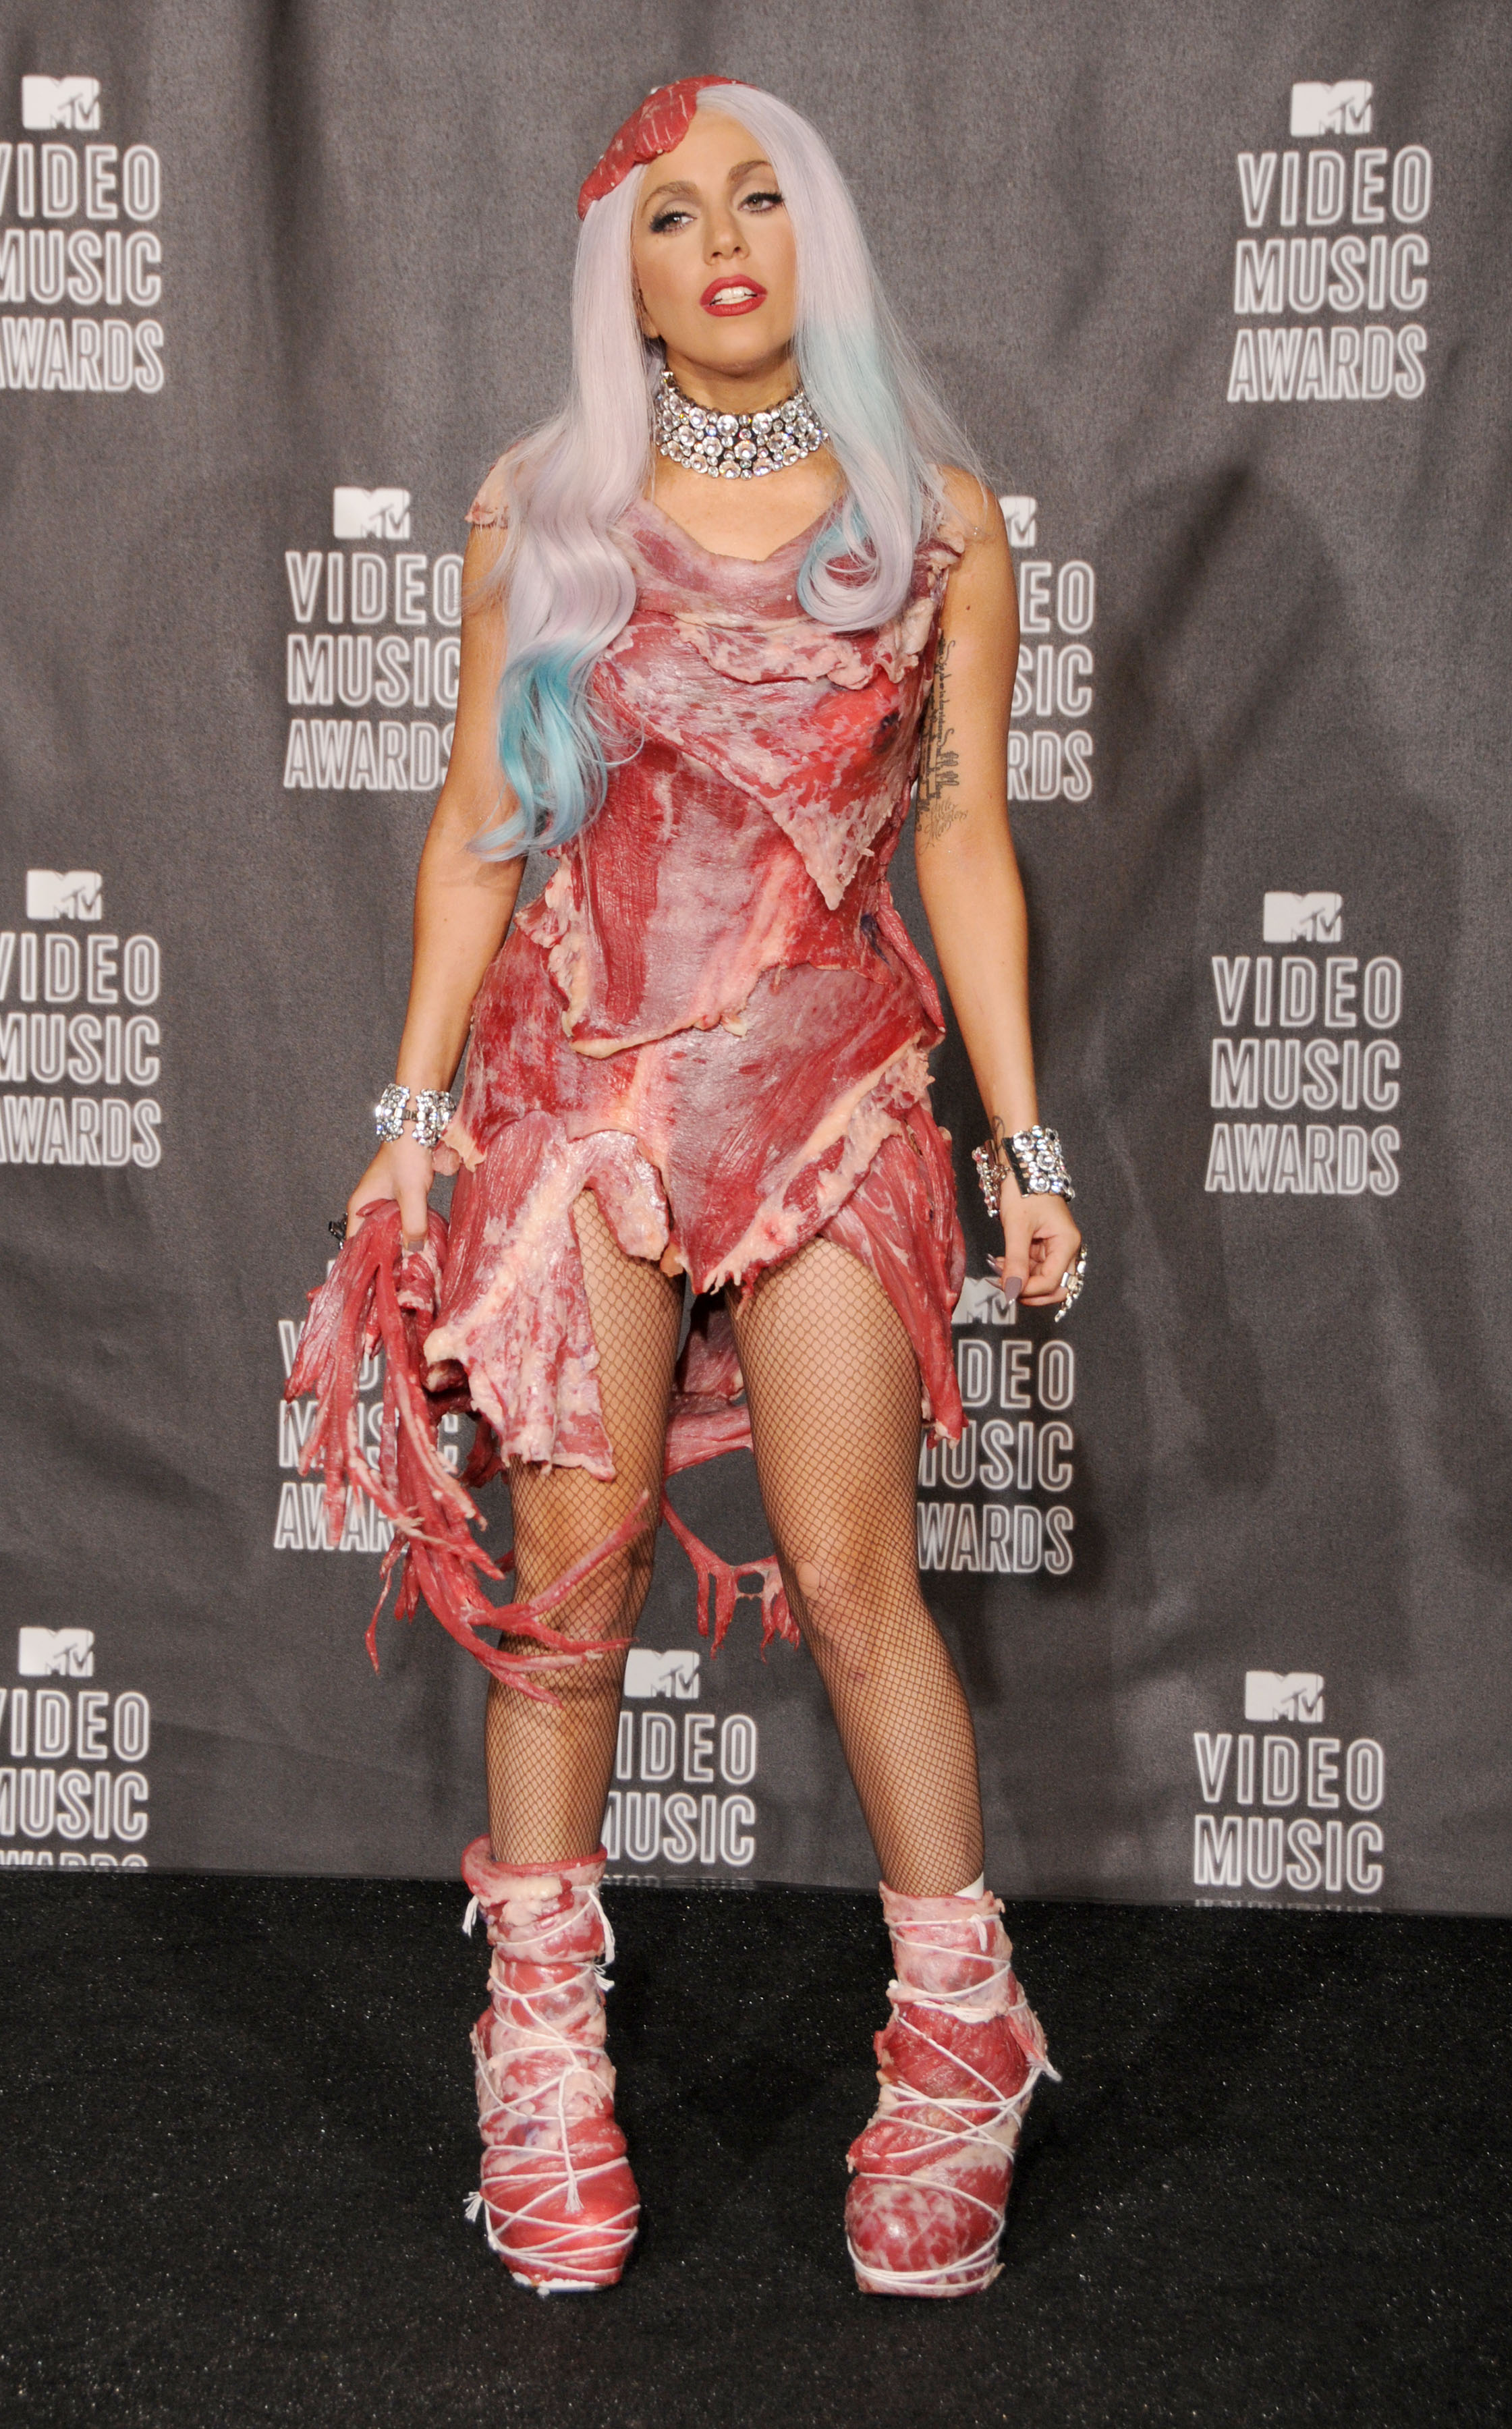 LOS ANGELES, CA - SEPTEMBER 12: Lady Gaga poses in the press room at the 2010 MTV Video Music Awards at the Nokia Theatre on September 13, 2010 in Los Angeles, CA.  (Photo by Gregg DeGuire/FilmMagic)